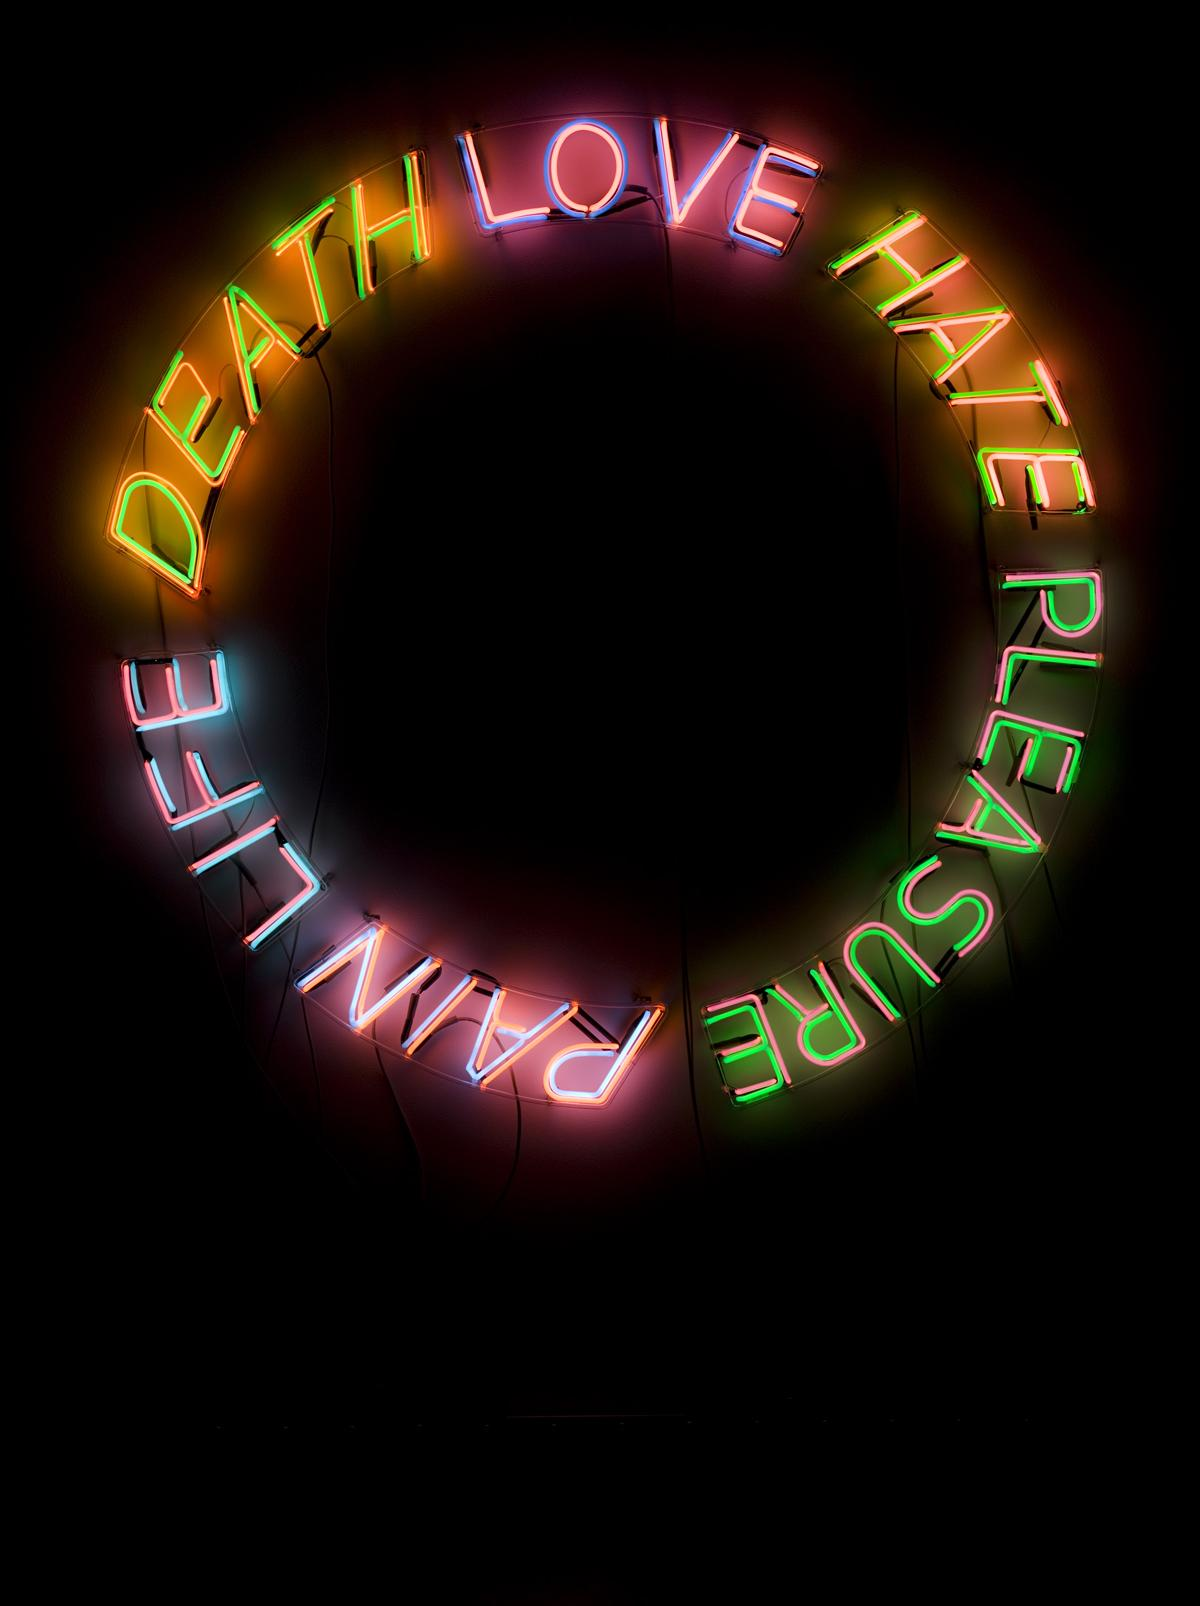 """The words """"DEATH,"""" """"LOVE,"""" """"HATE,"""" """"PLEASURE,"""" """"PAIN,"""" and """"LIFE"""" appear in illuminated neon, organized in a circle against a black background. In order, their colors are orange, purple, pink, green, and blue."""